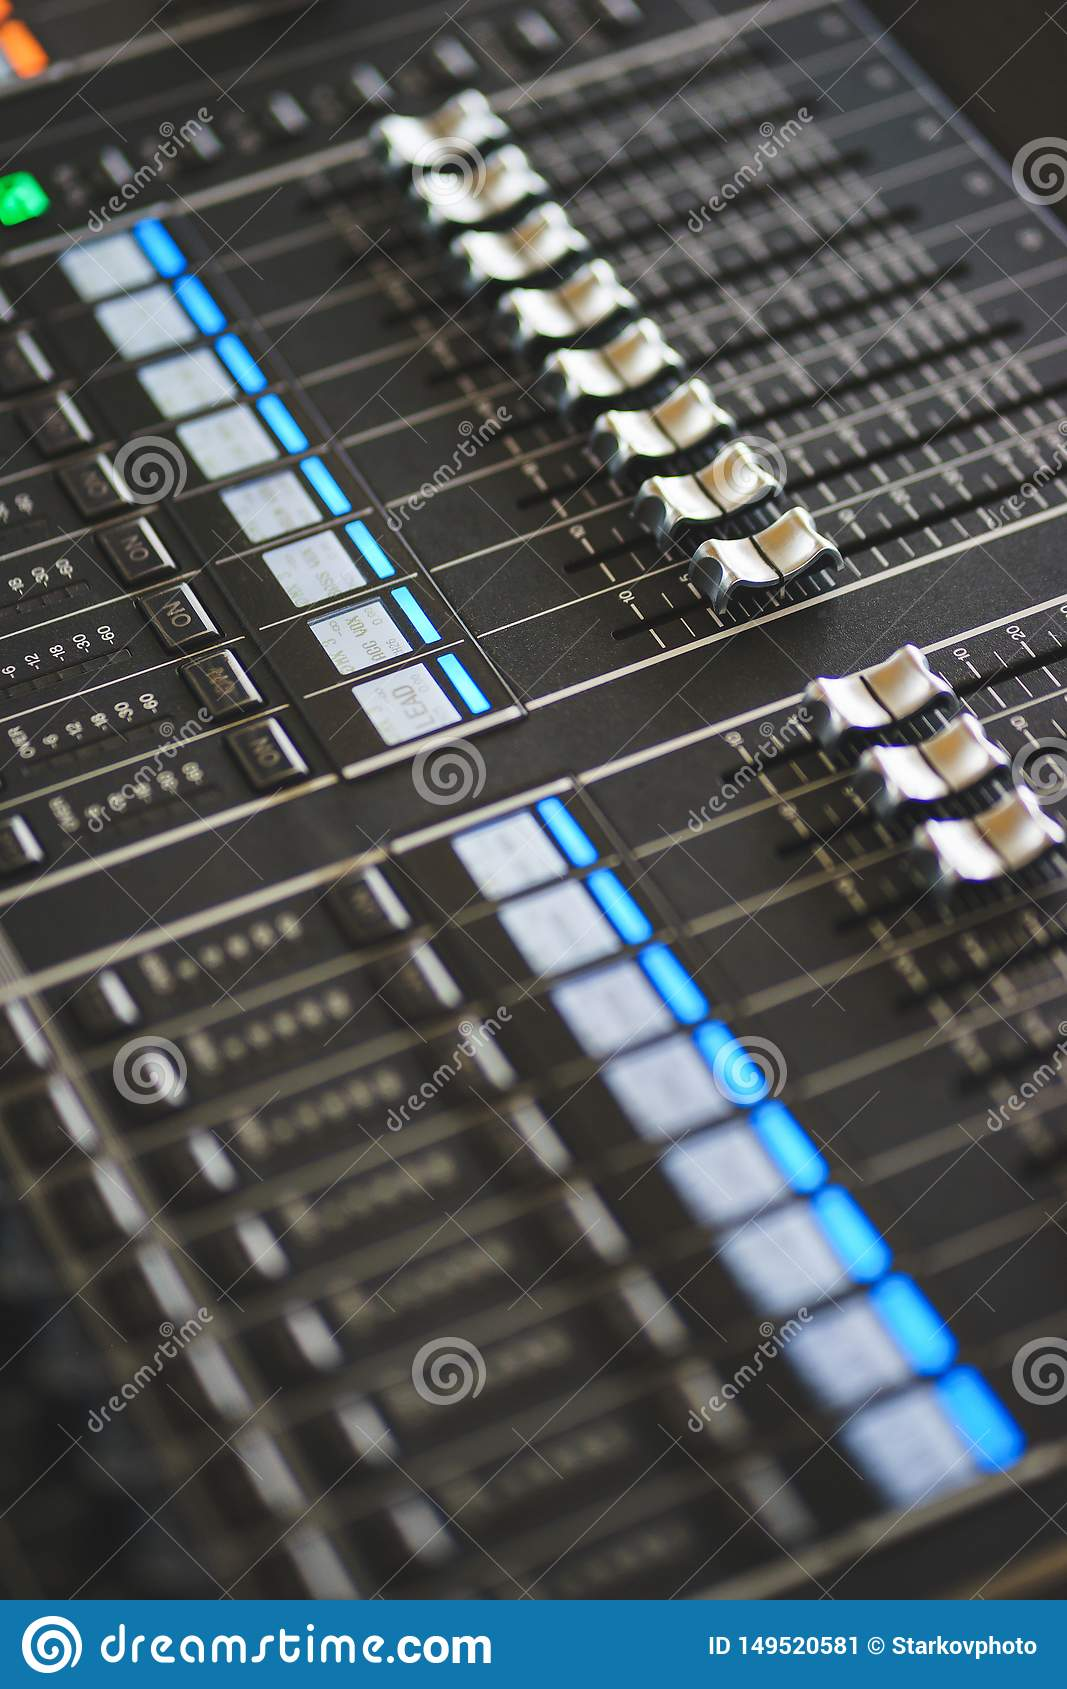 Sound equipment, large mixing console for sound producer.